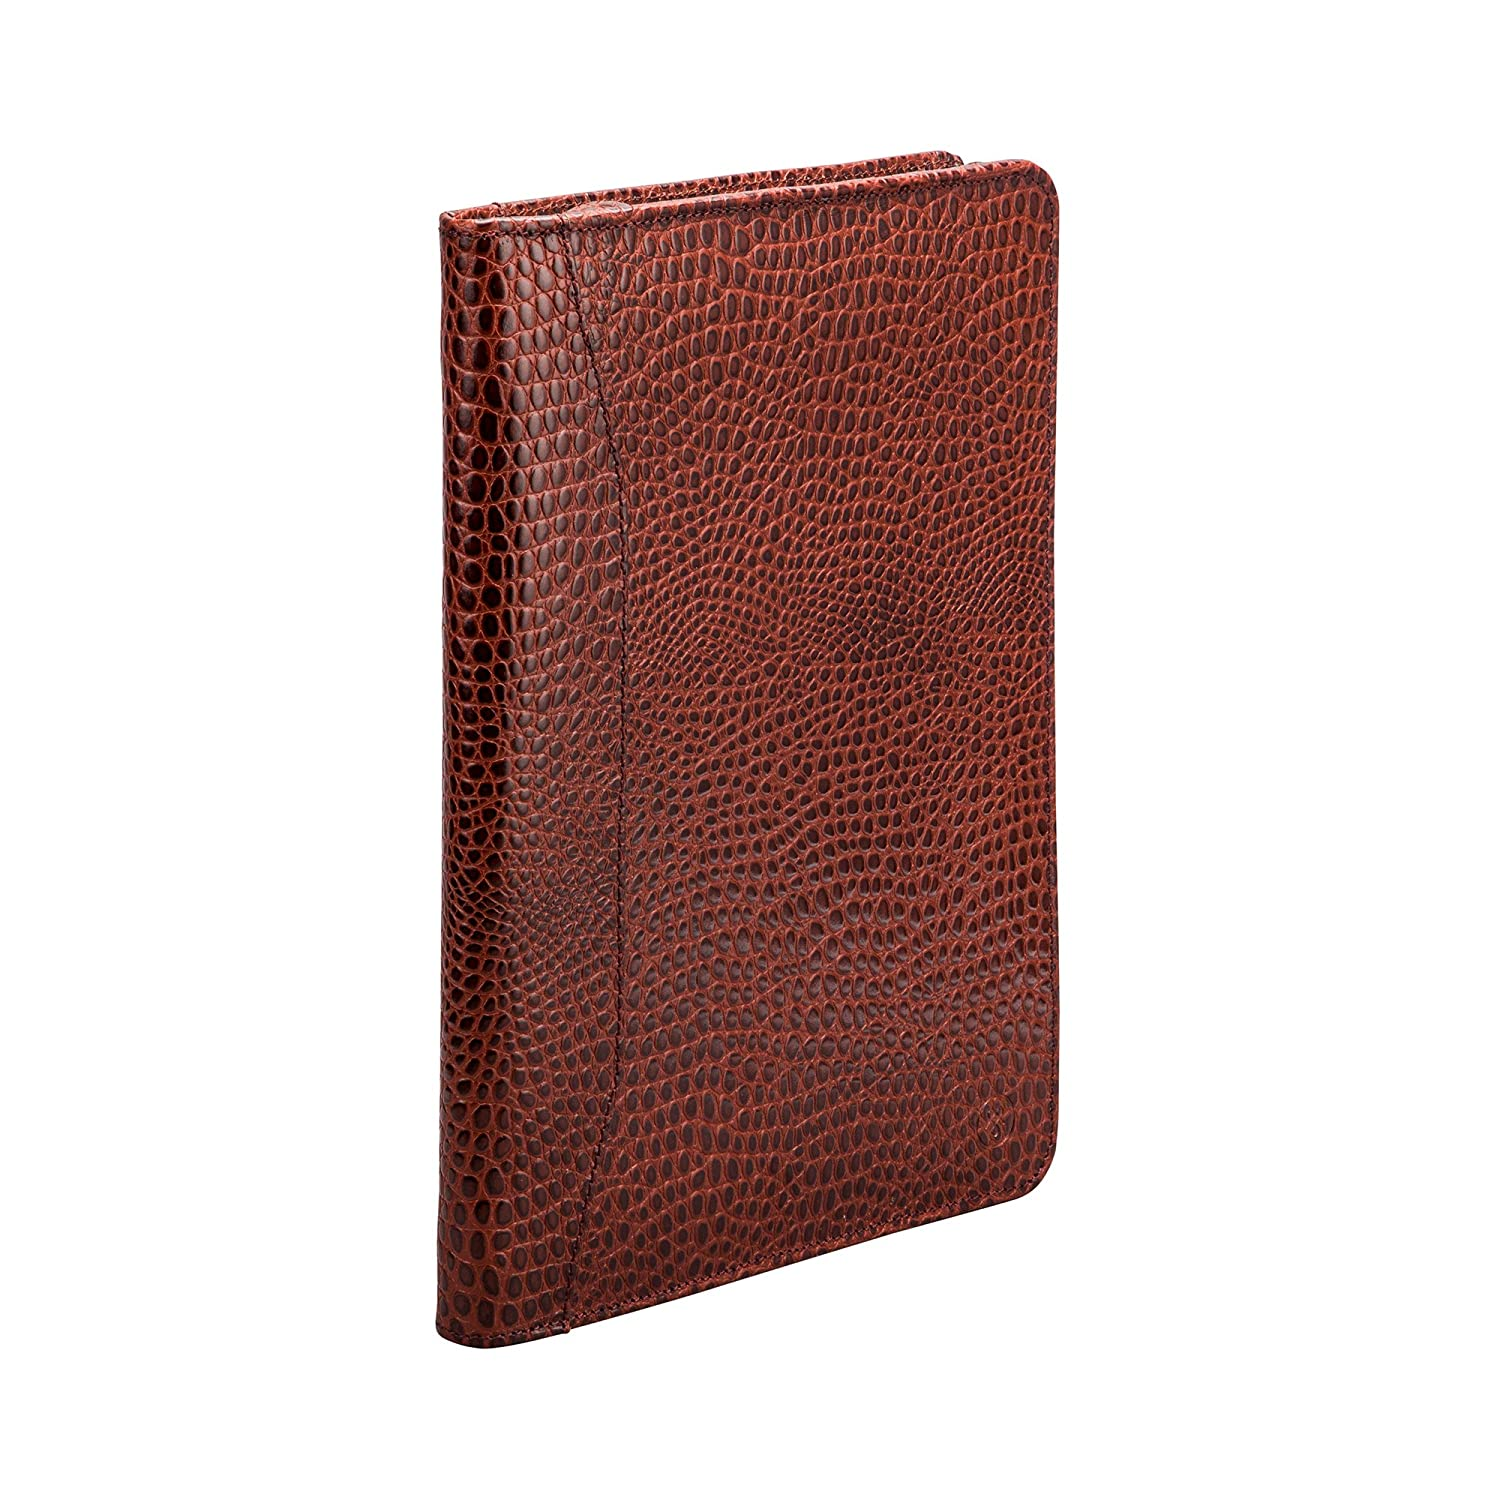 2a653cd6cd Maxwell-Scott® Luxury Zipped Mock Croc Handmade Italian Full Grain Leather  Conference Folder (The Dimaro Croco)  Amazon.co.uk  Clothing